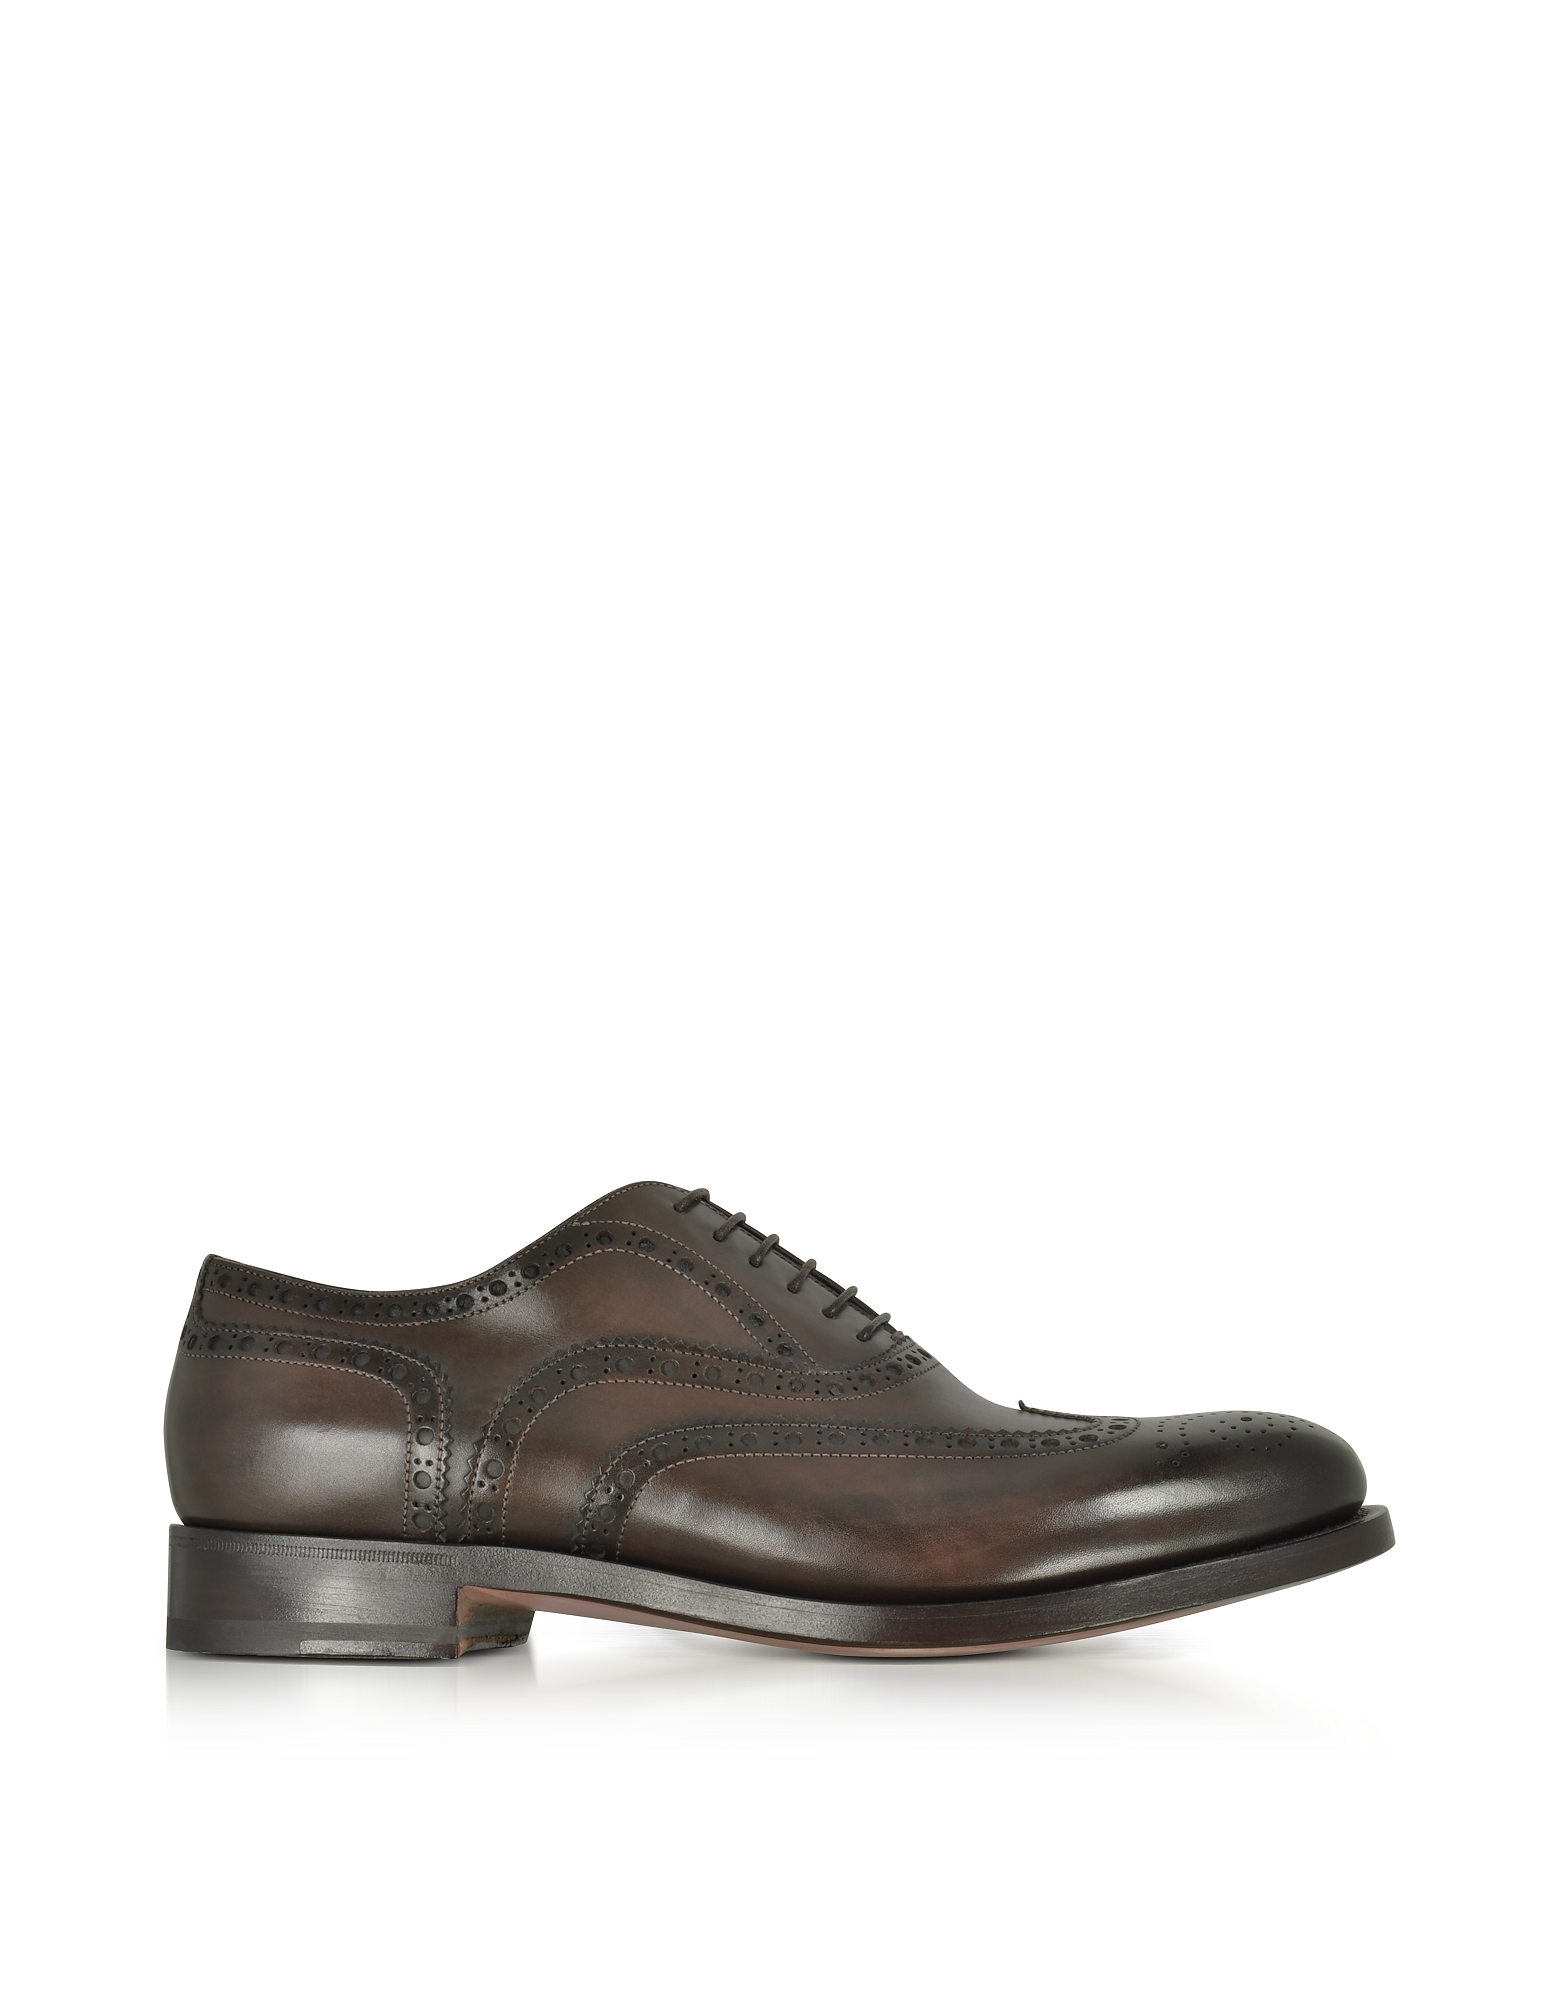 Santoni Oscar Dark Brown Leather Wingtip Derby Shoes